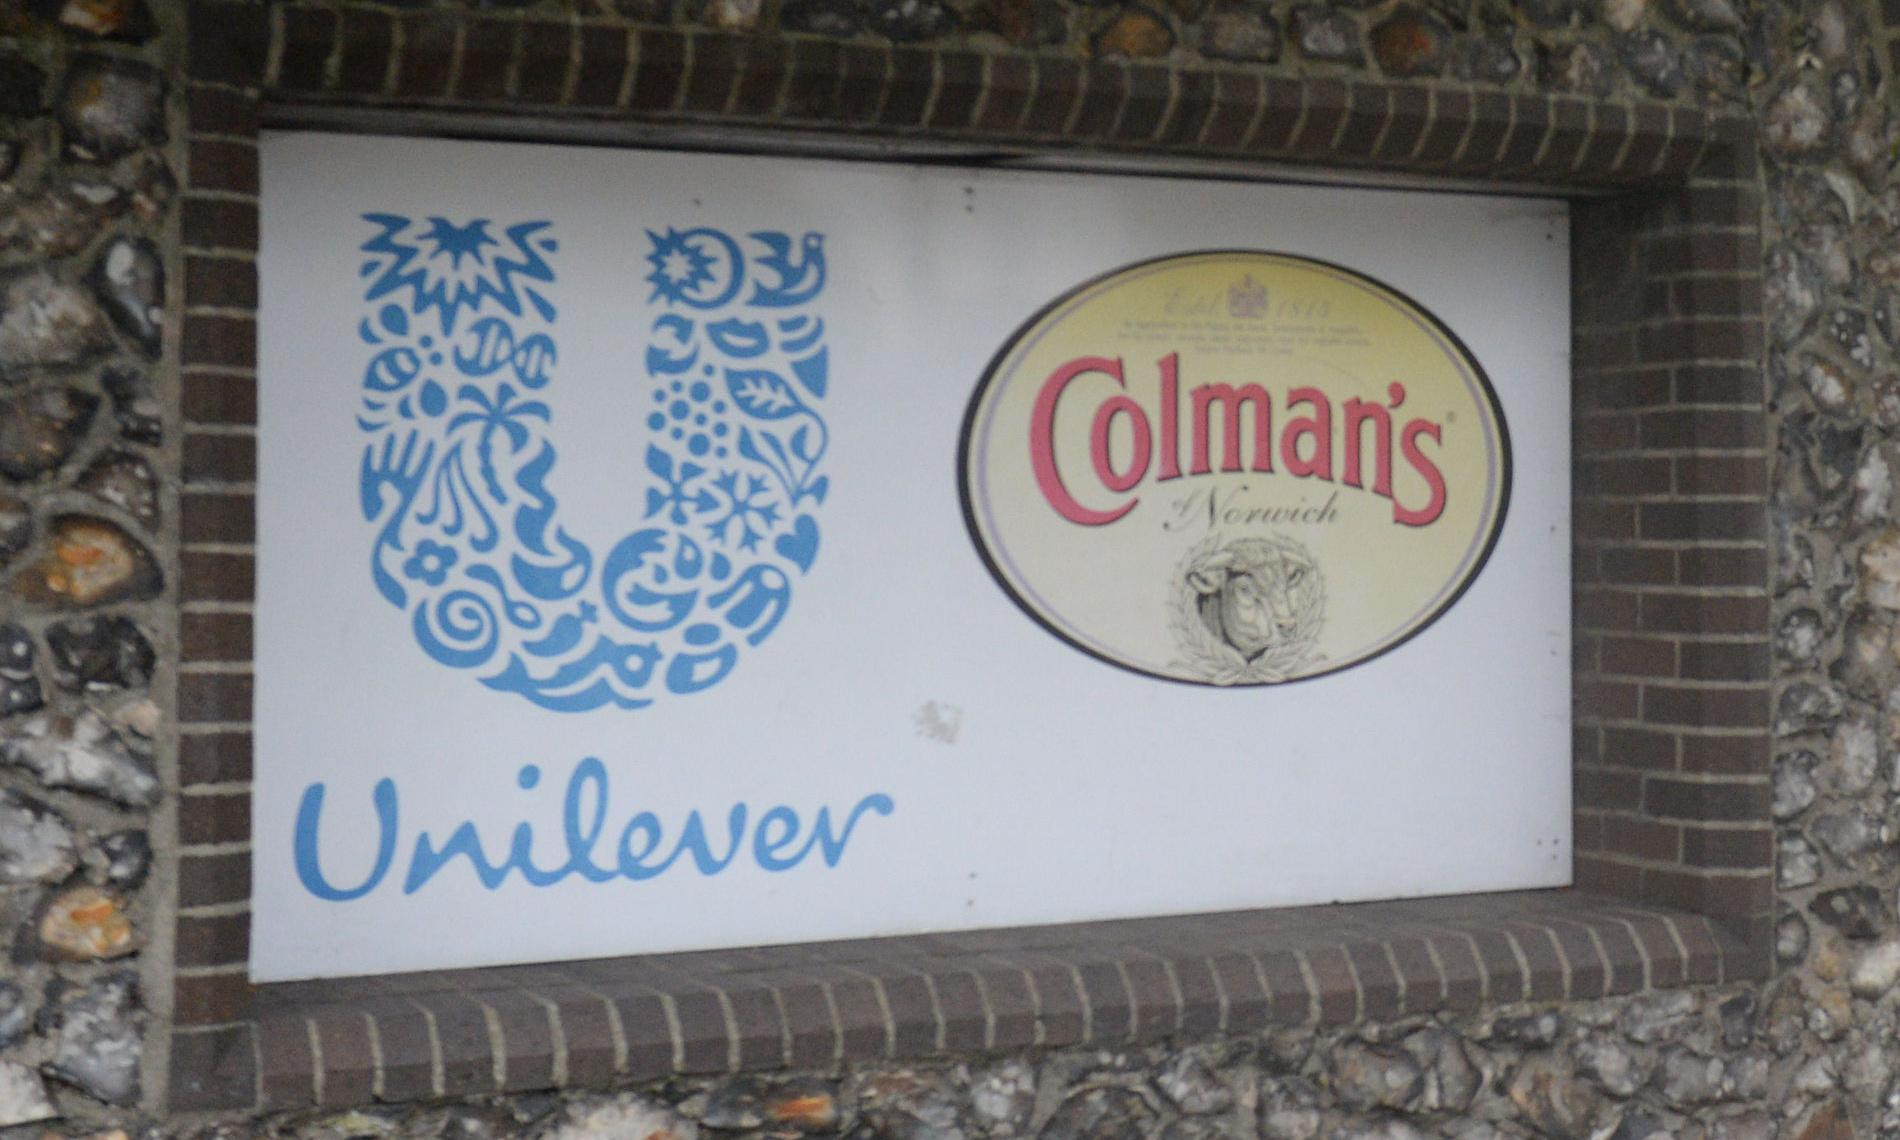 Colman's confirms its historic links to Norwich will continue